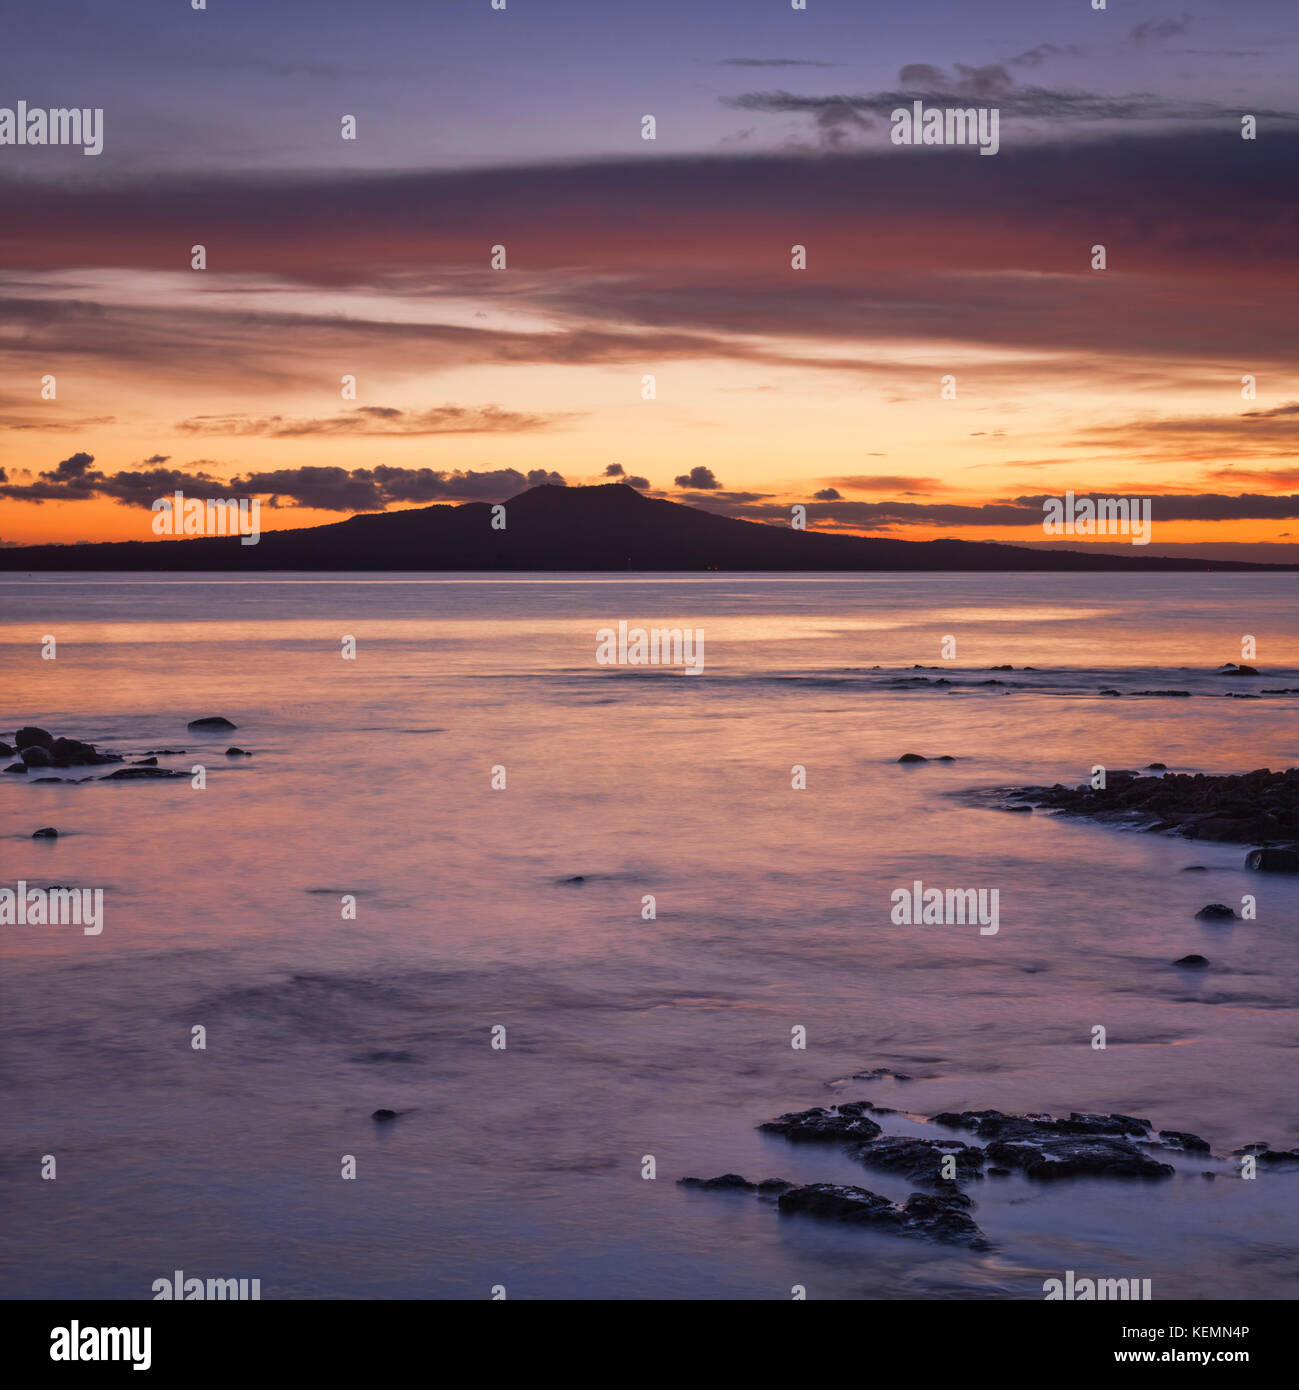 Rangitoto Island, a dormant volcano off Auckland, New Zealand, before sunrise. - Stock Image